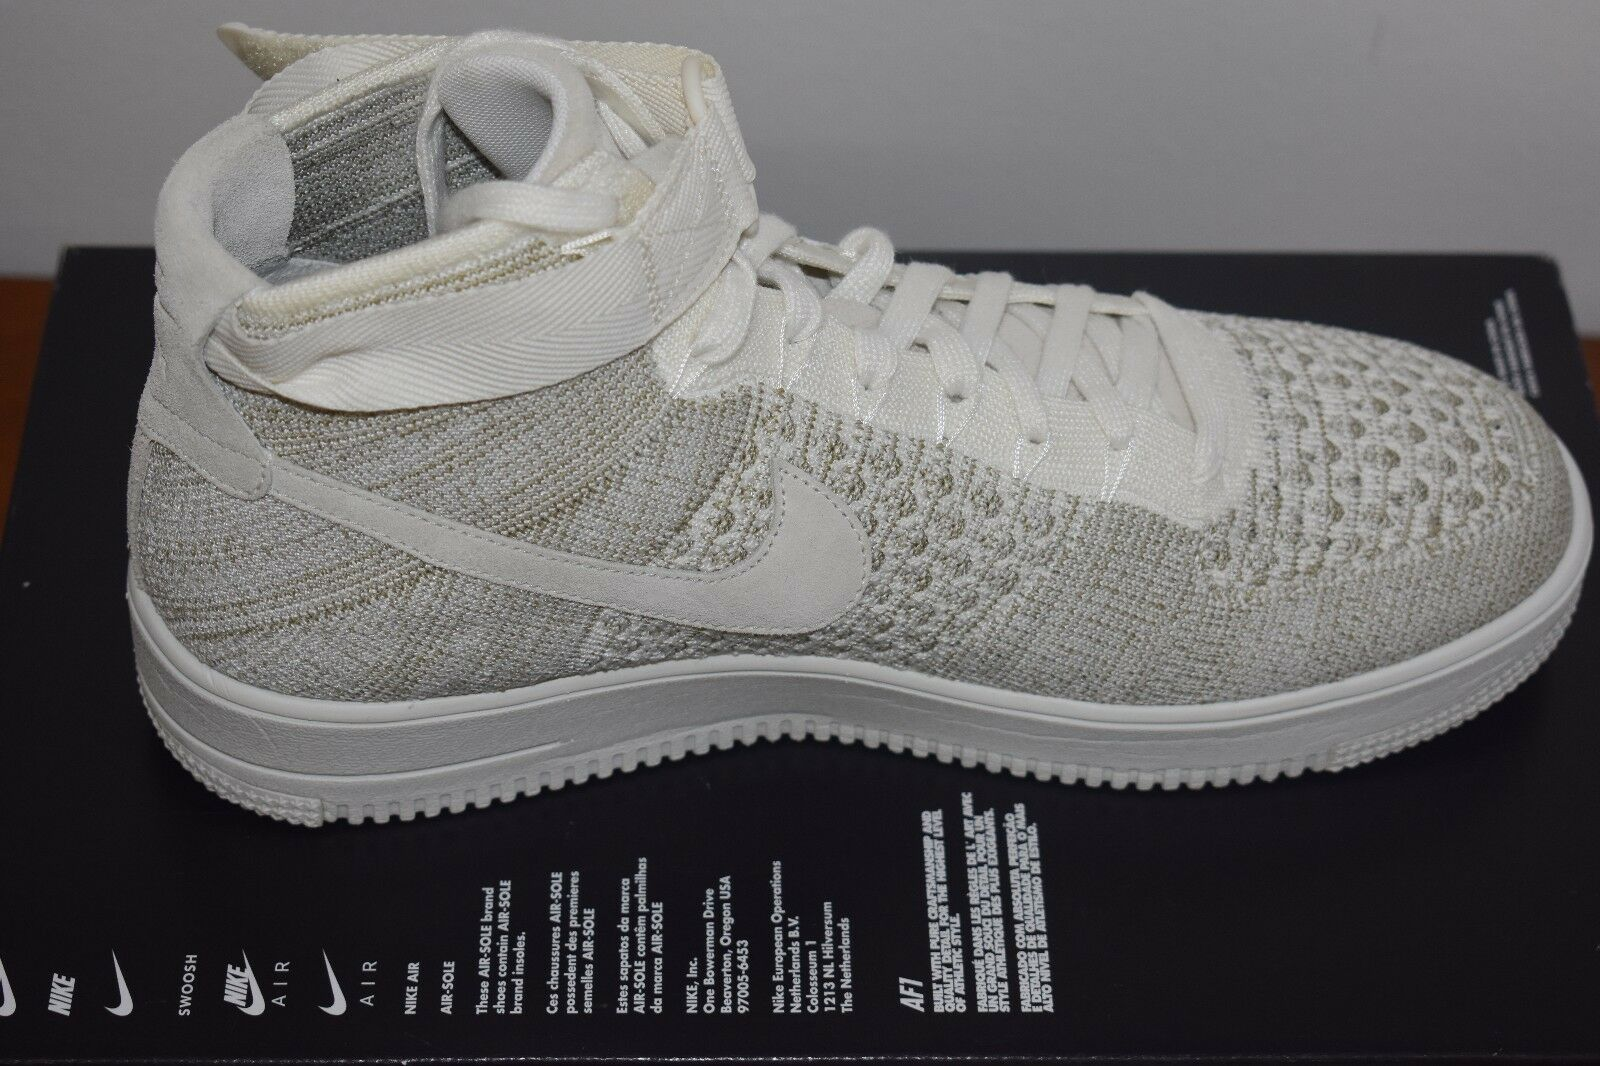 Brand New Nike AF1 Ultra Flyknit MID Men's Fashion Sneakers Price reduction Price reduction